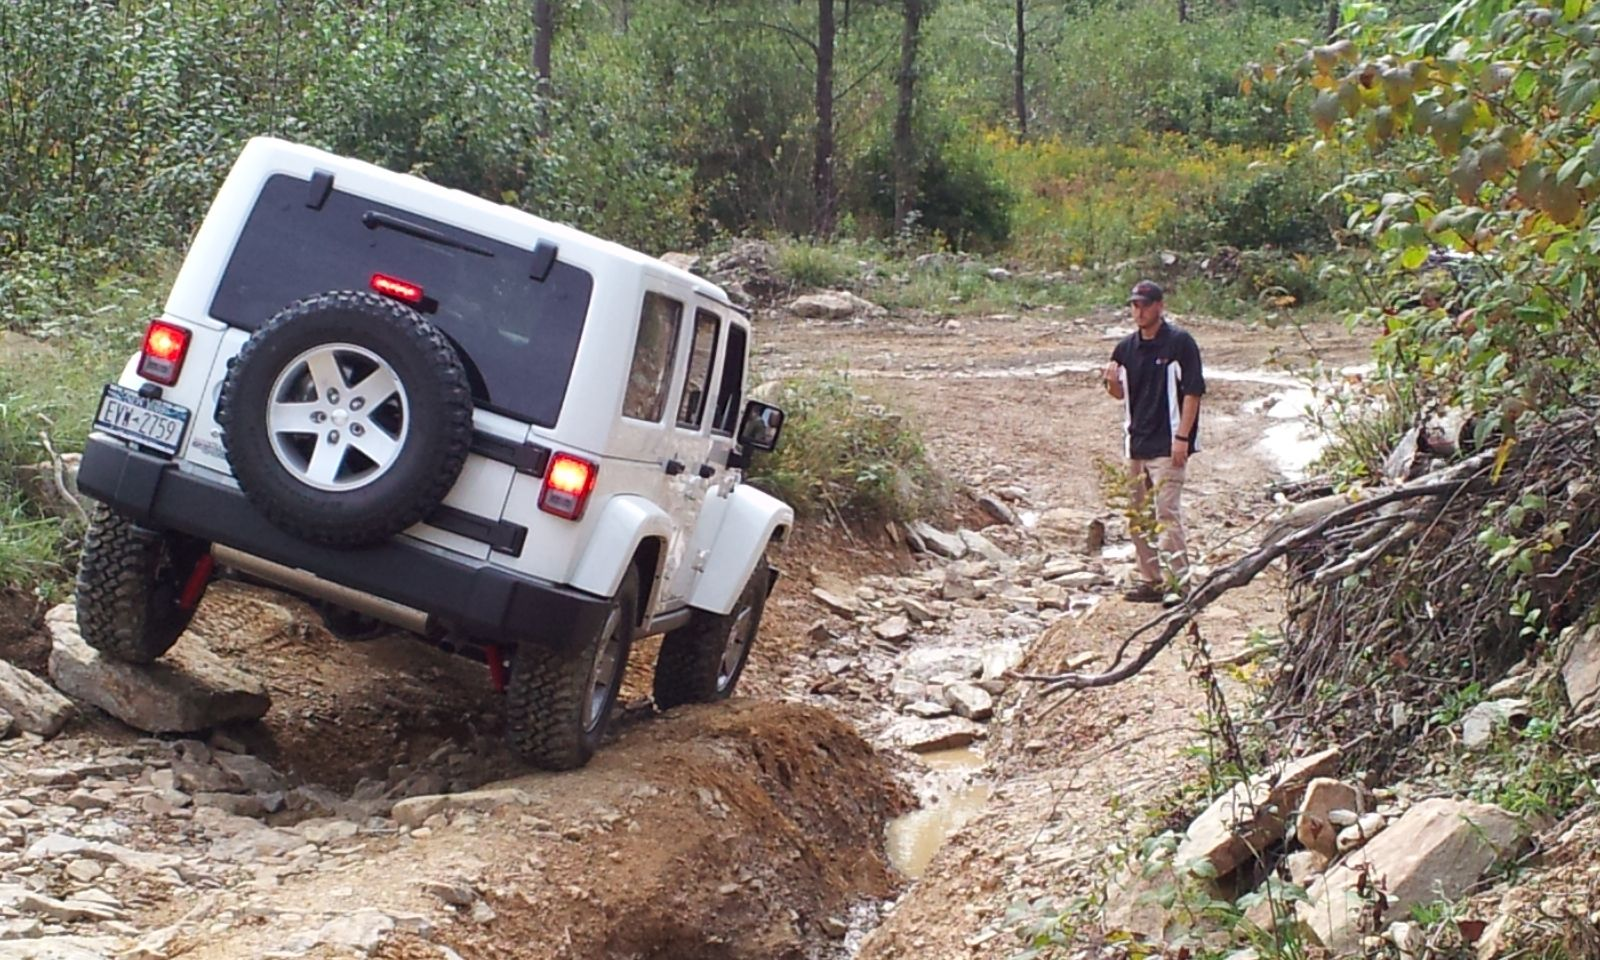 Www Offroad Consulting Com To Learn What You As The Driver And